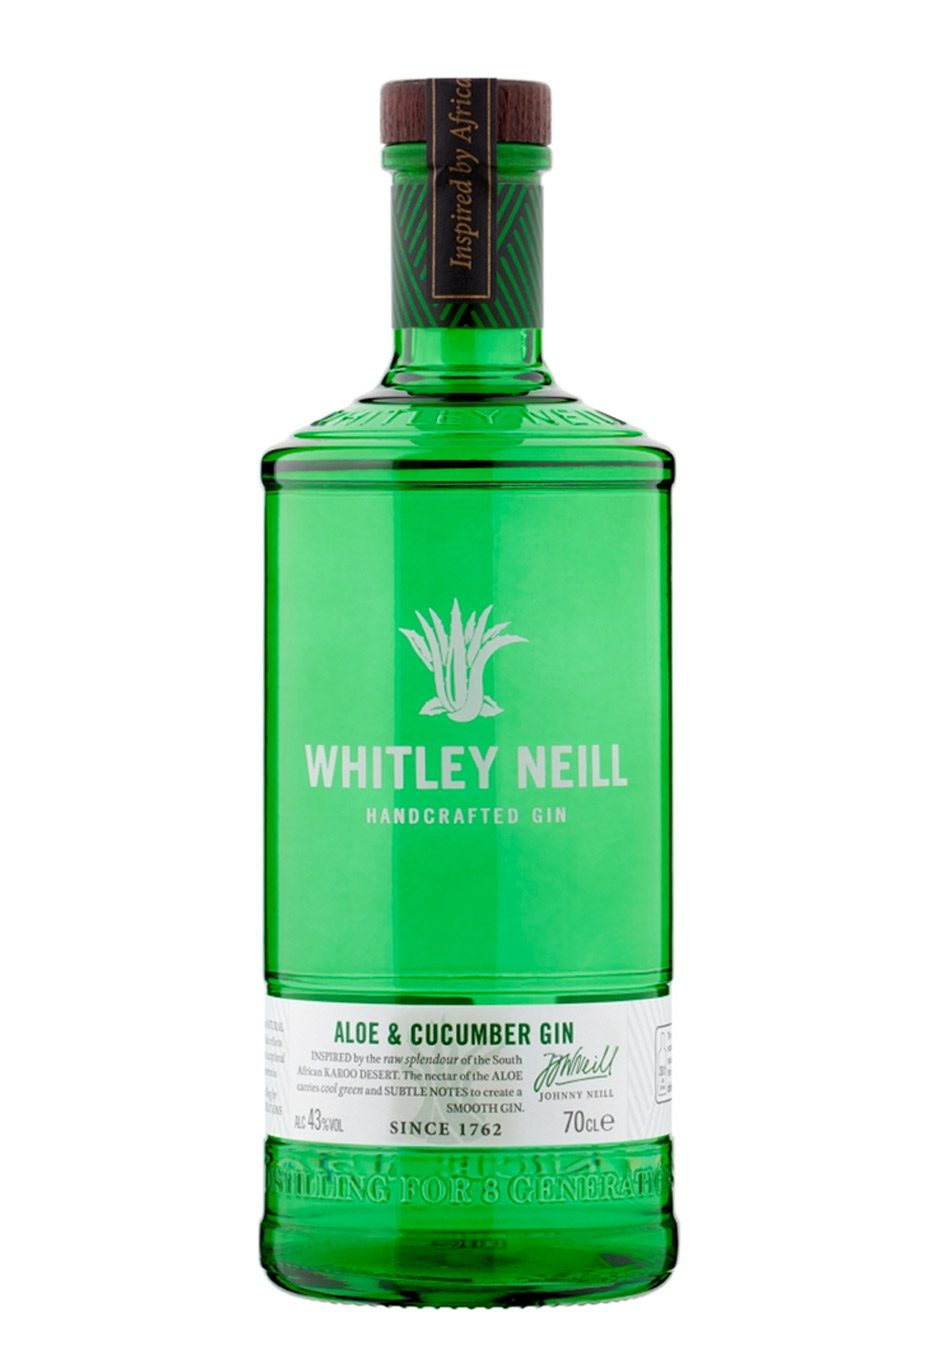 Whitley Neill   Aloe & Cucumber   Hand Crafted Gin